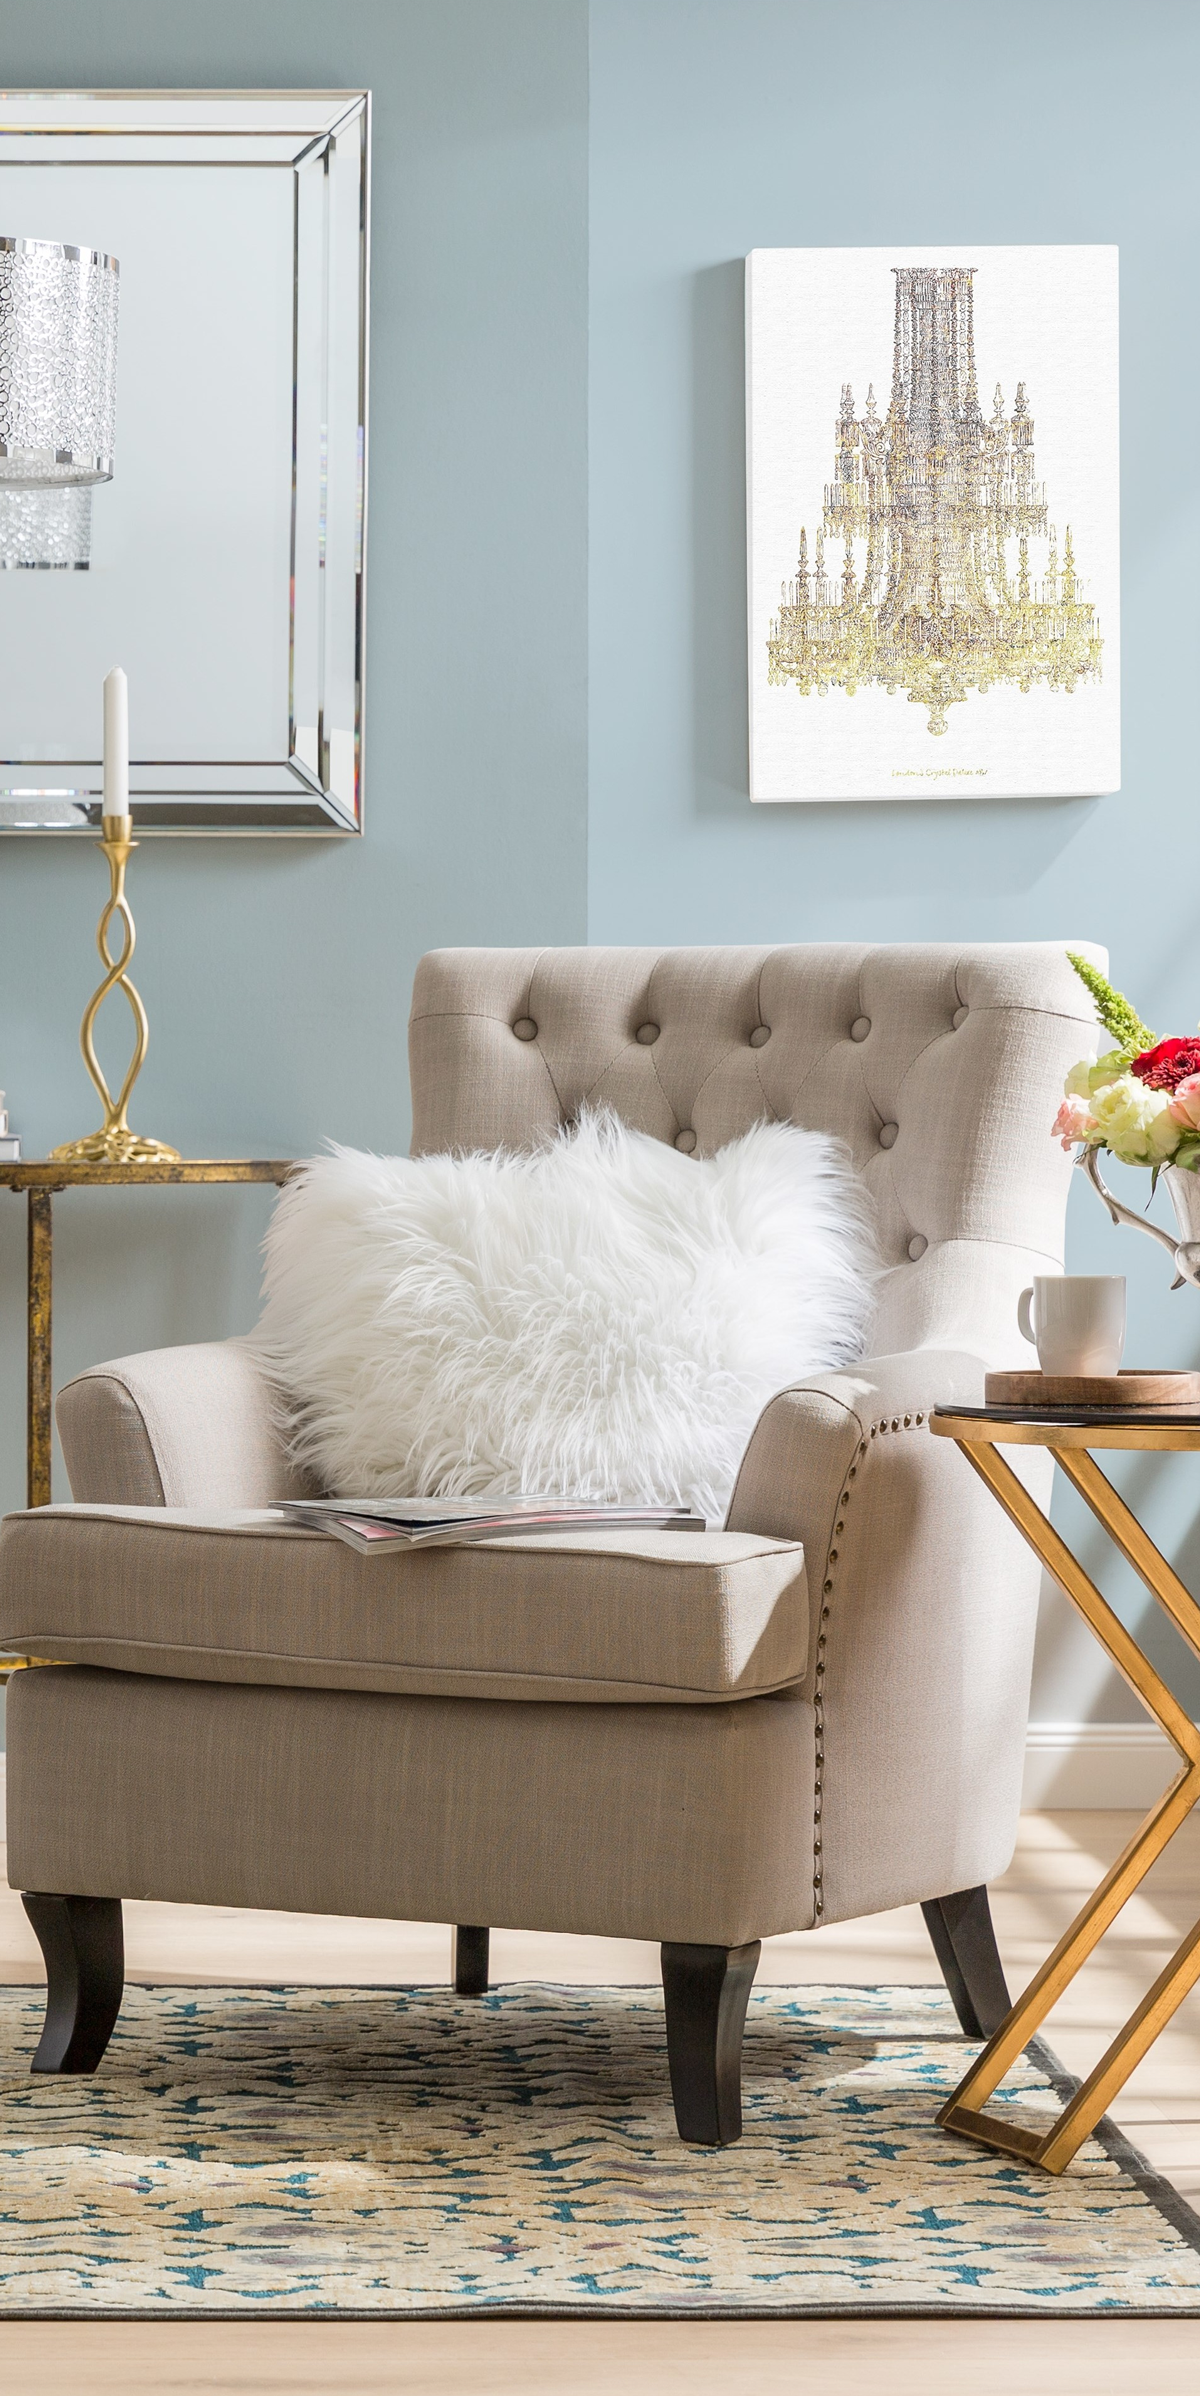 Armchair with buttontufted upholstery and nailhead trim